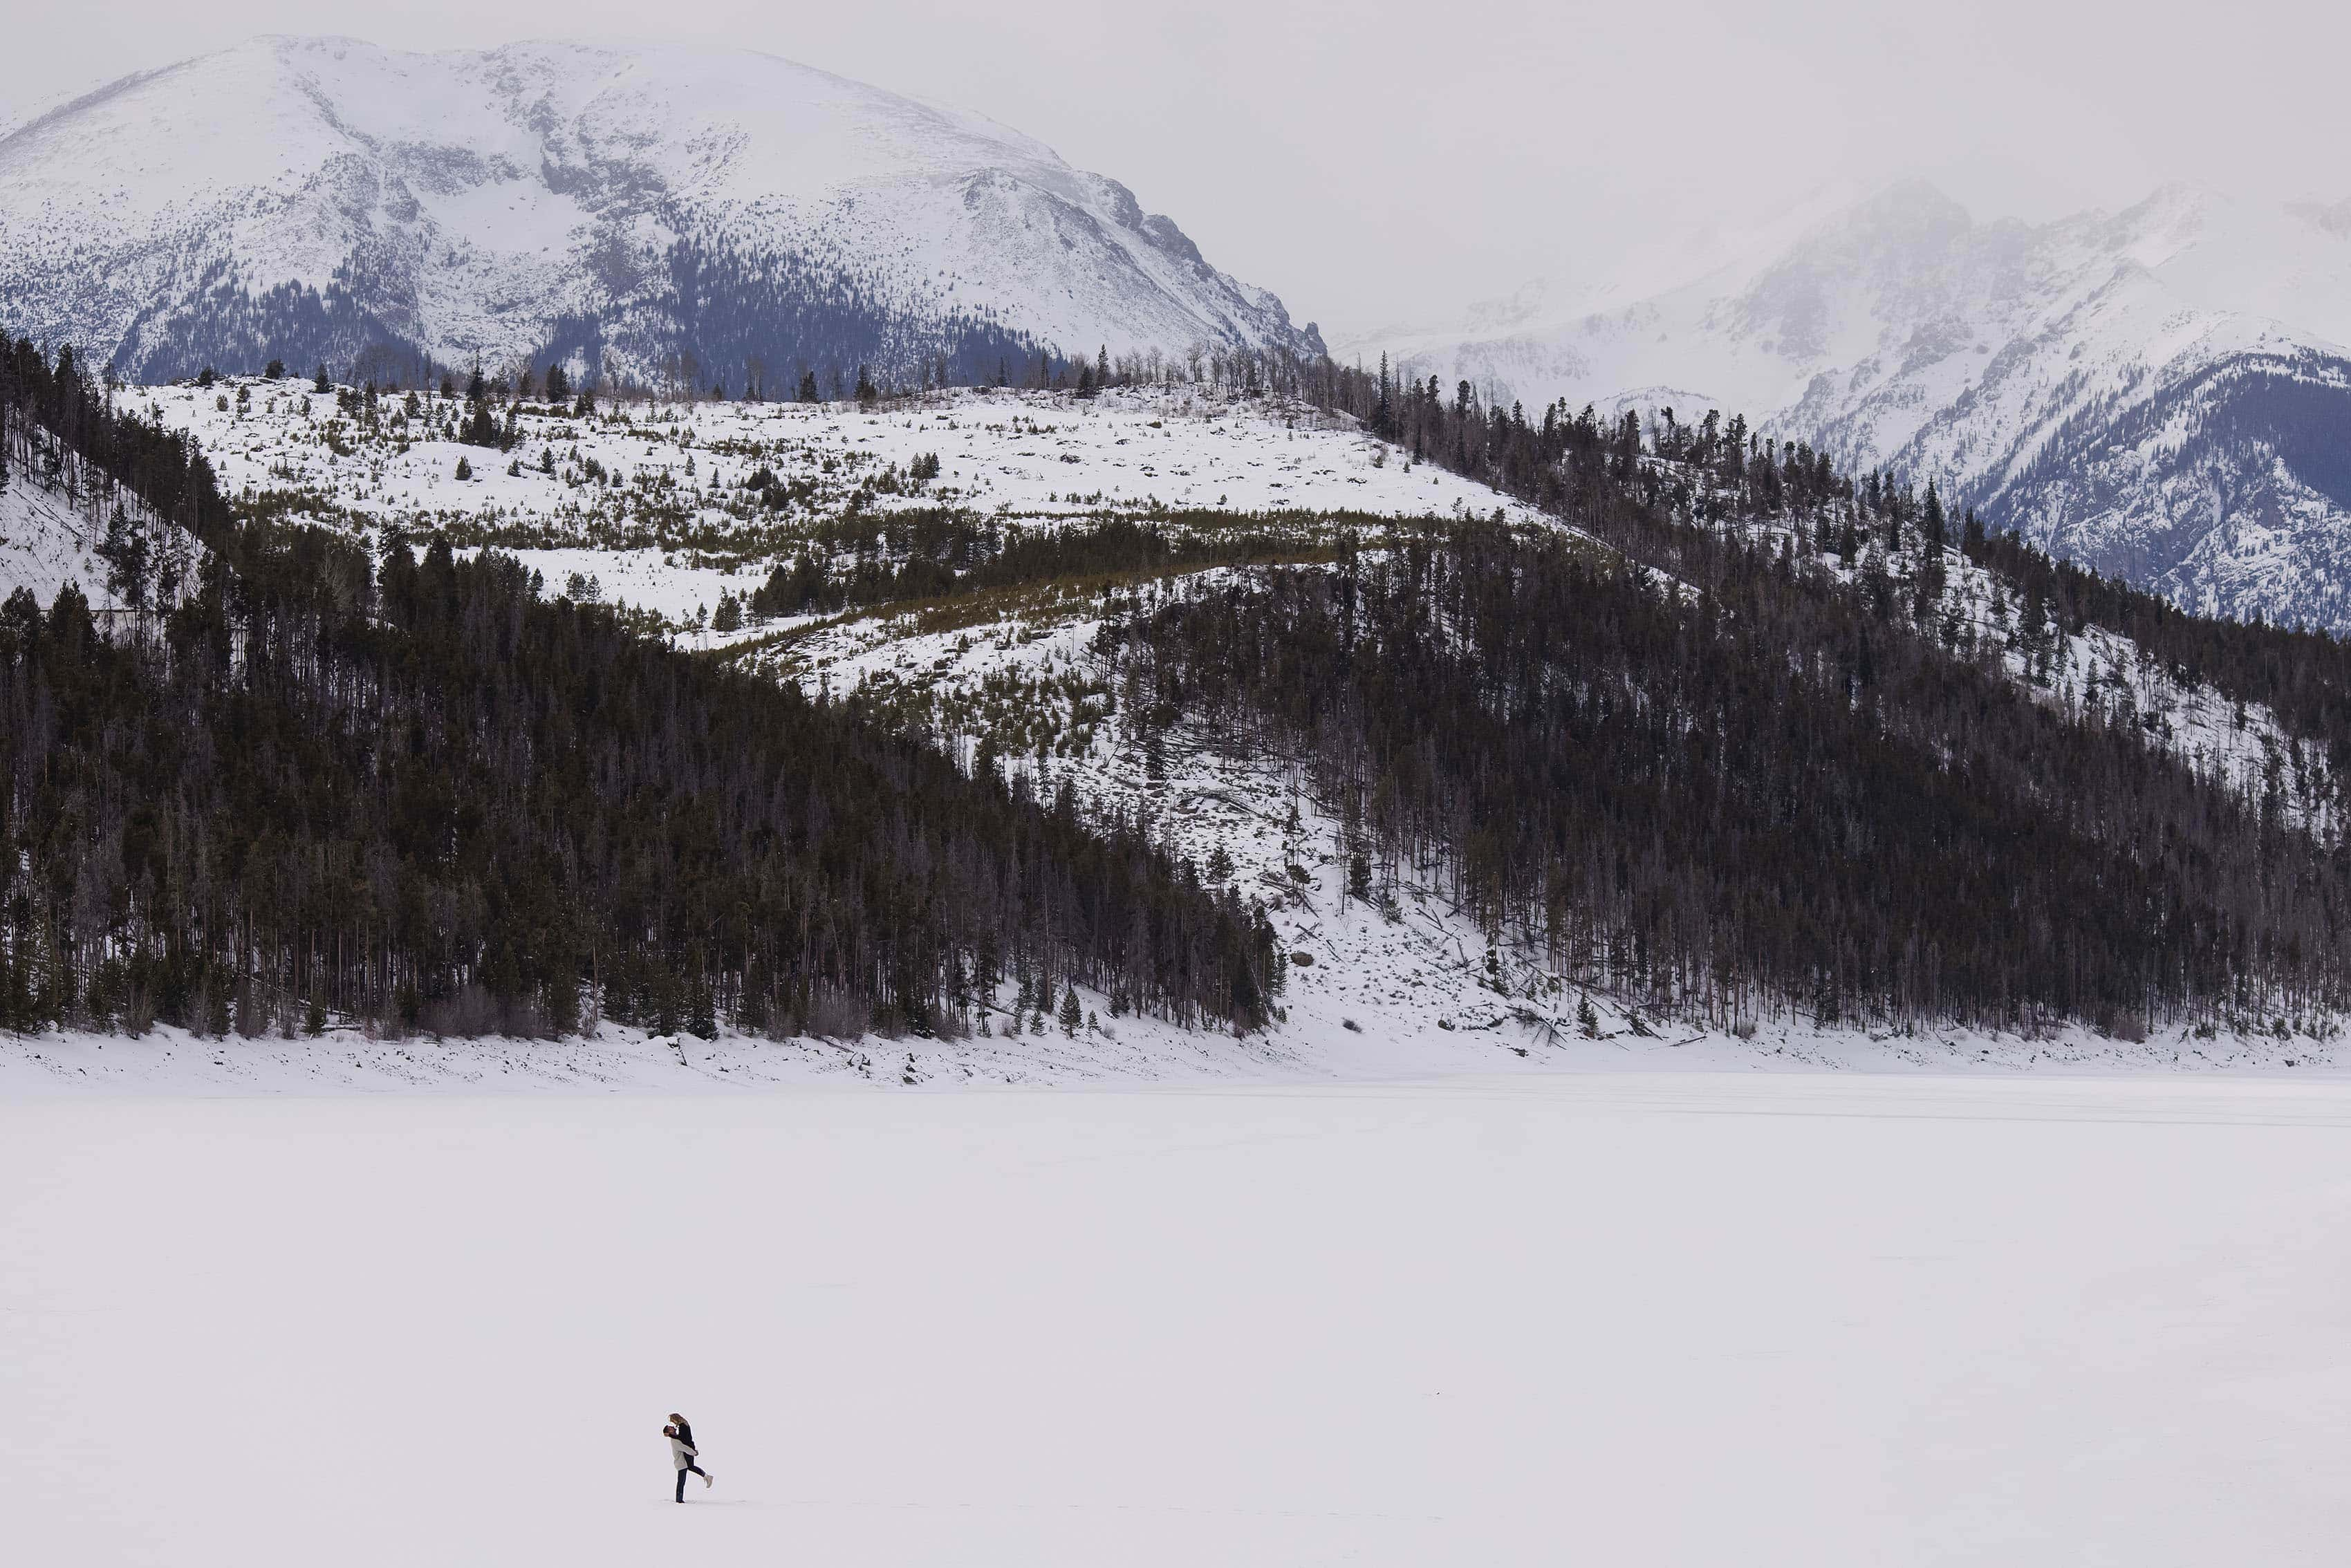 A couple embraces on Lake Dillon in the snow near the Tenmile Range